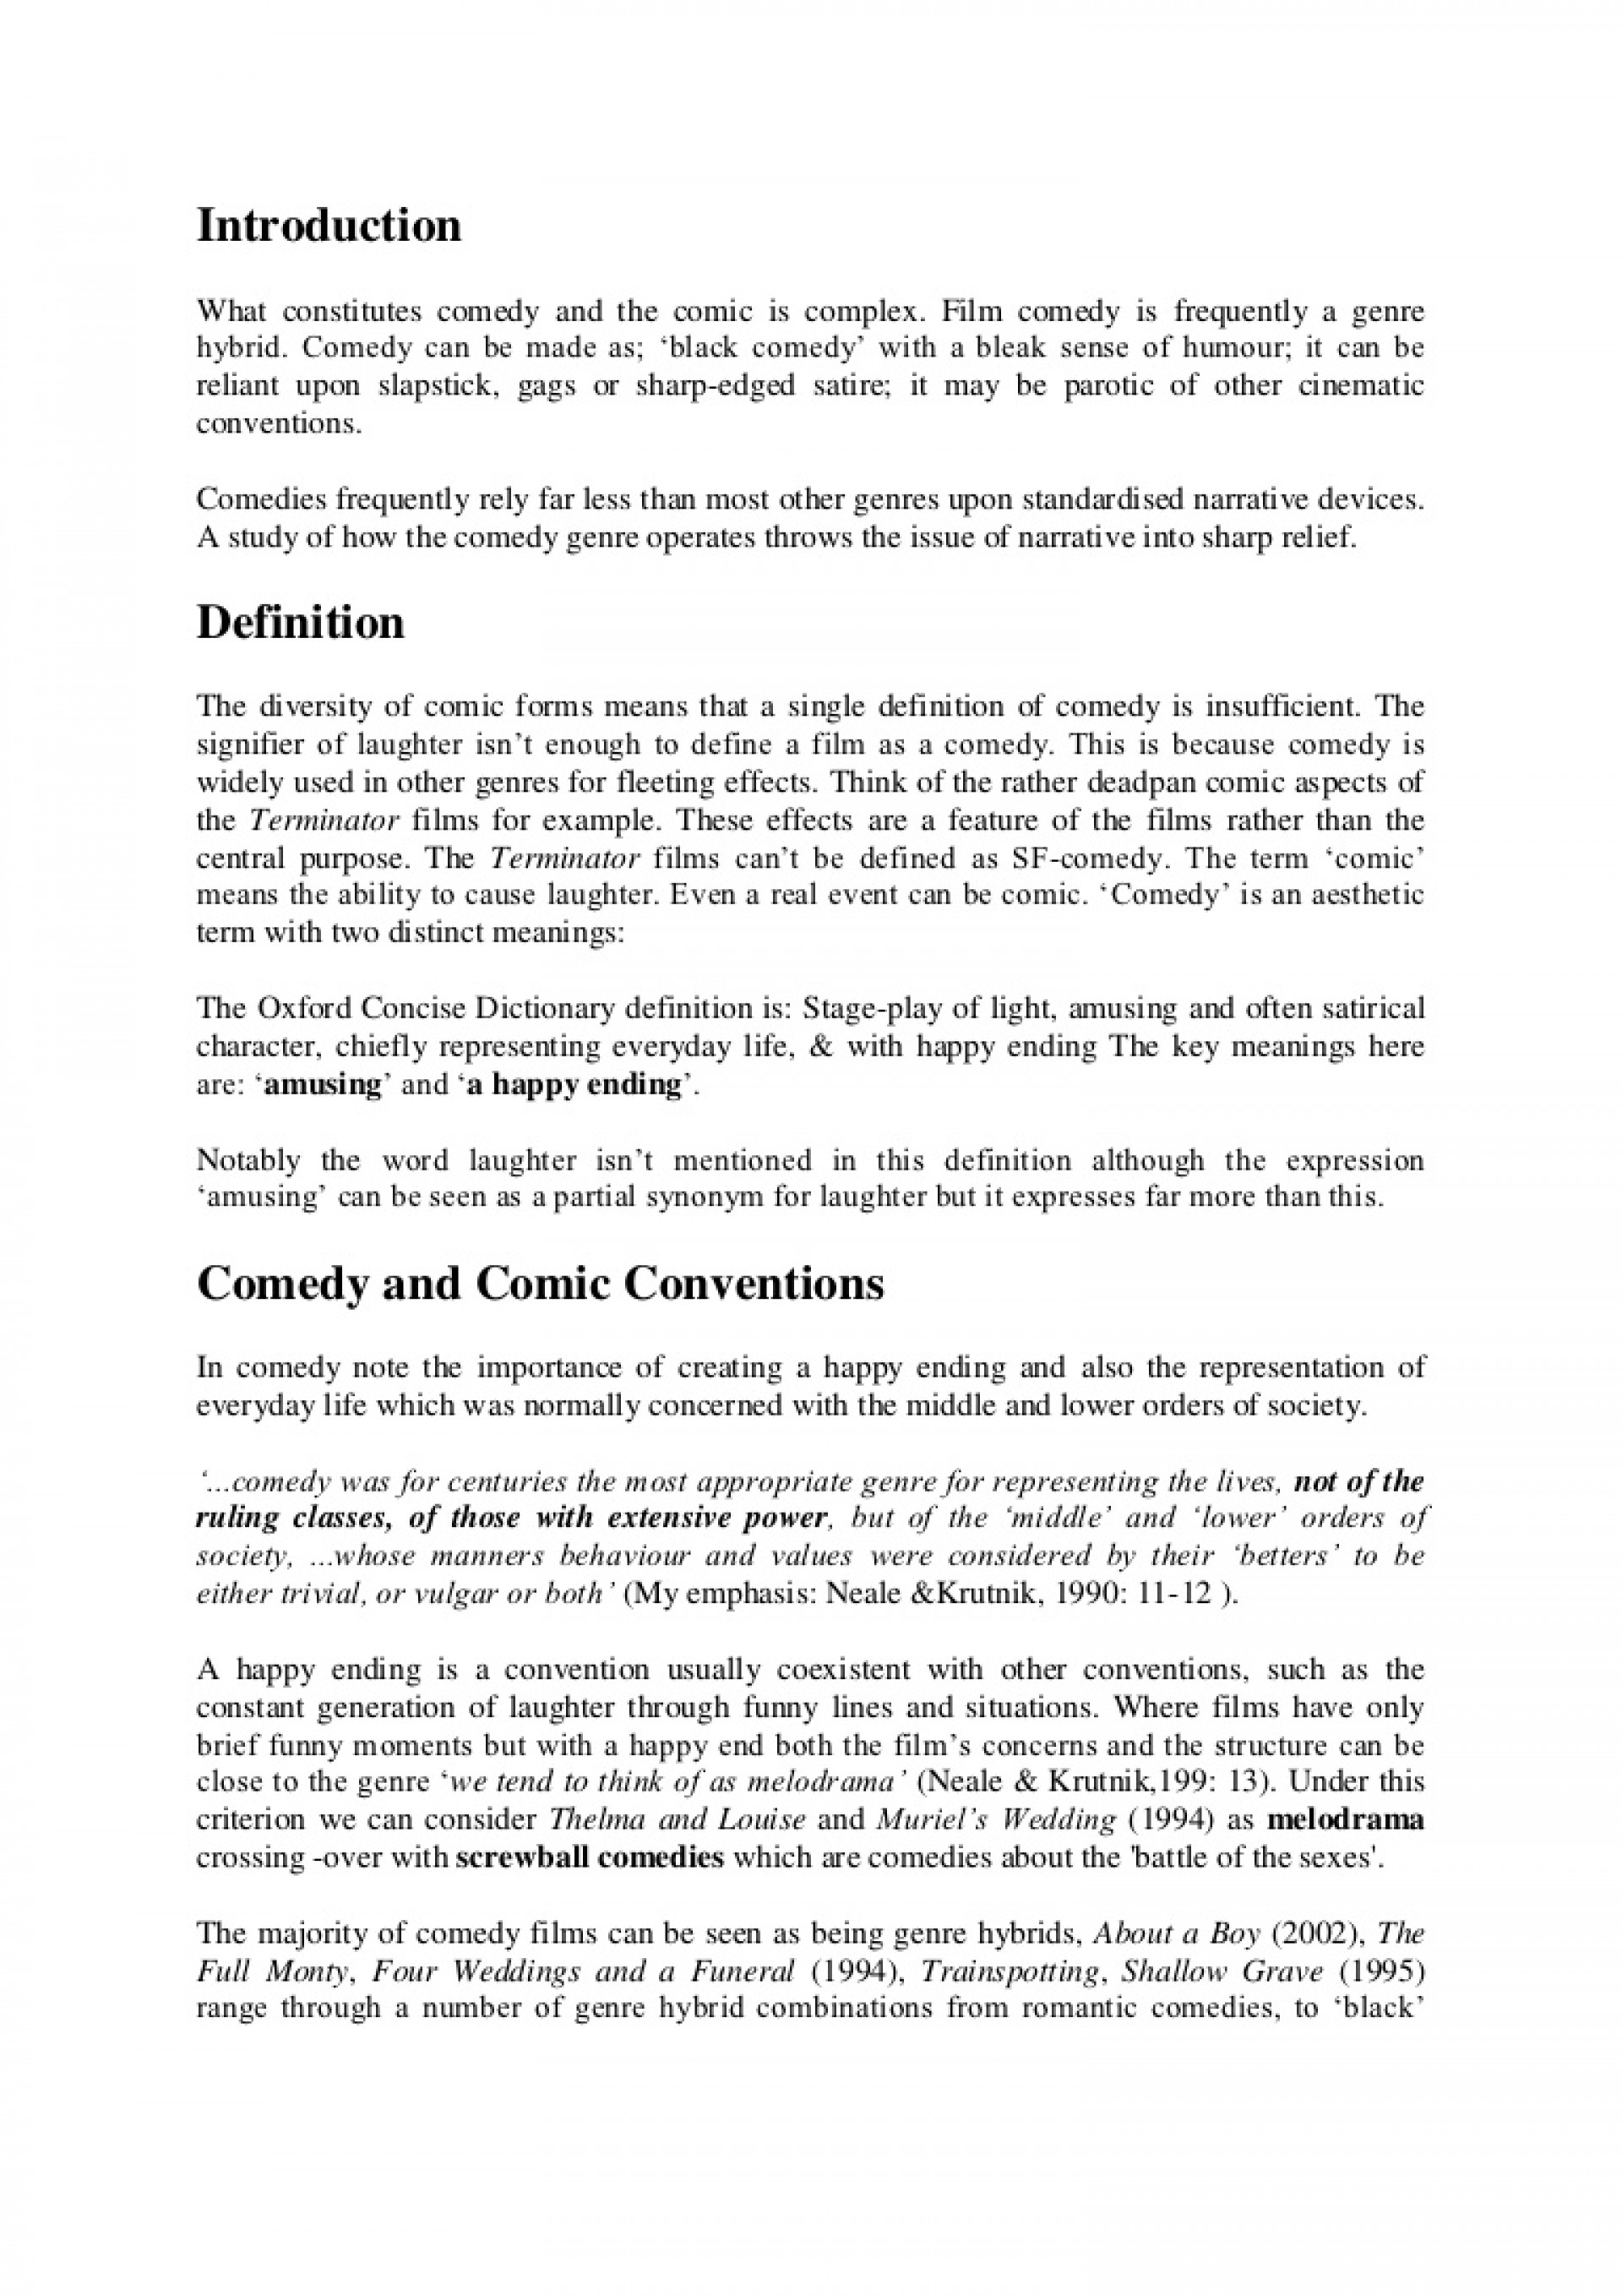 003 Comedyconventionsessay Phpapp01 Thumbnail Ending An Essay Excellent Ways To End Expository With A Rhetorical Question 1920